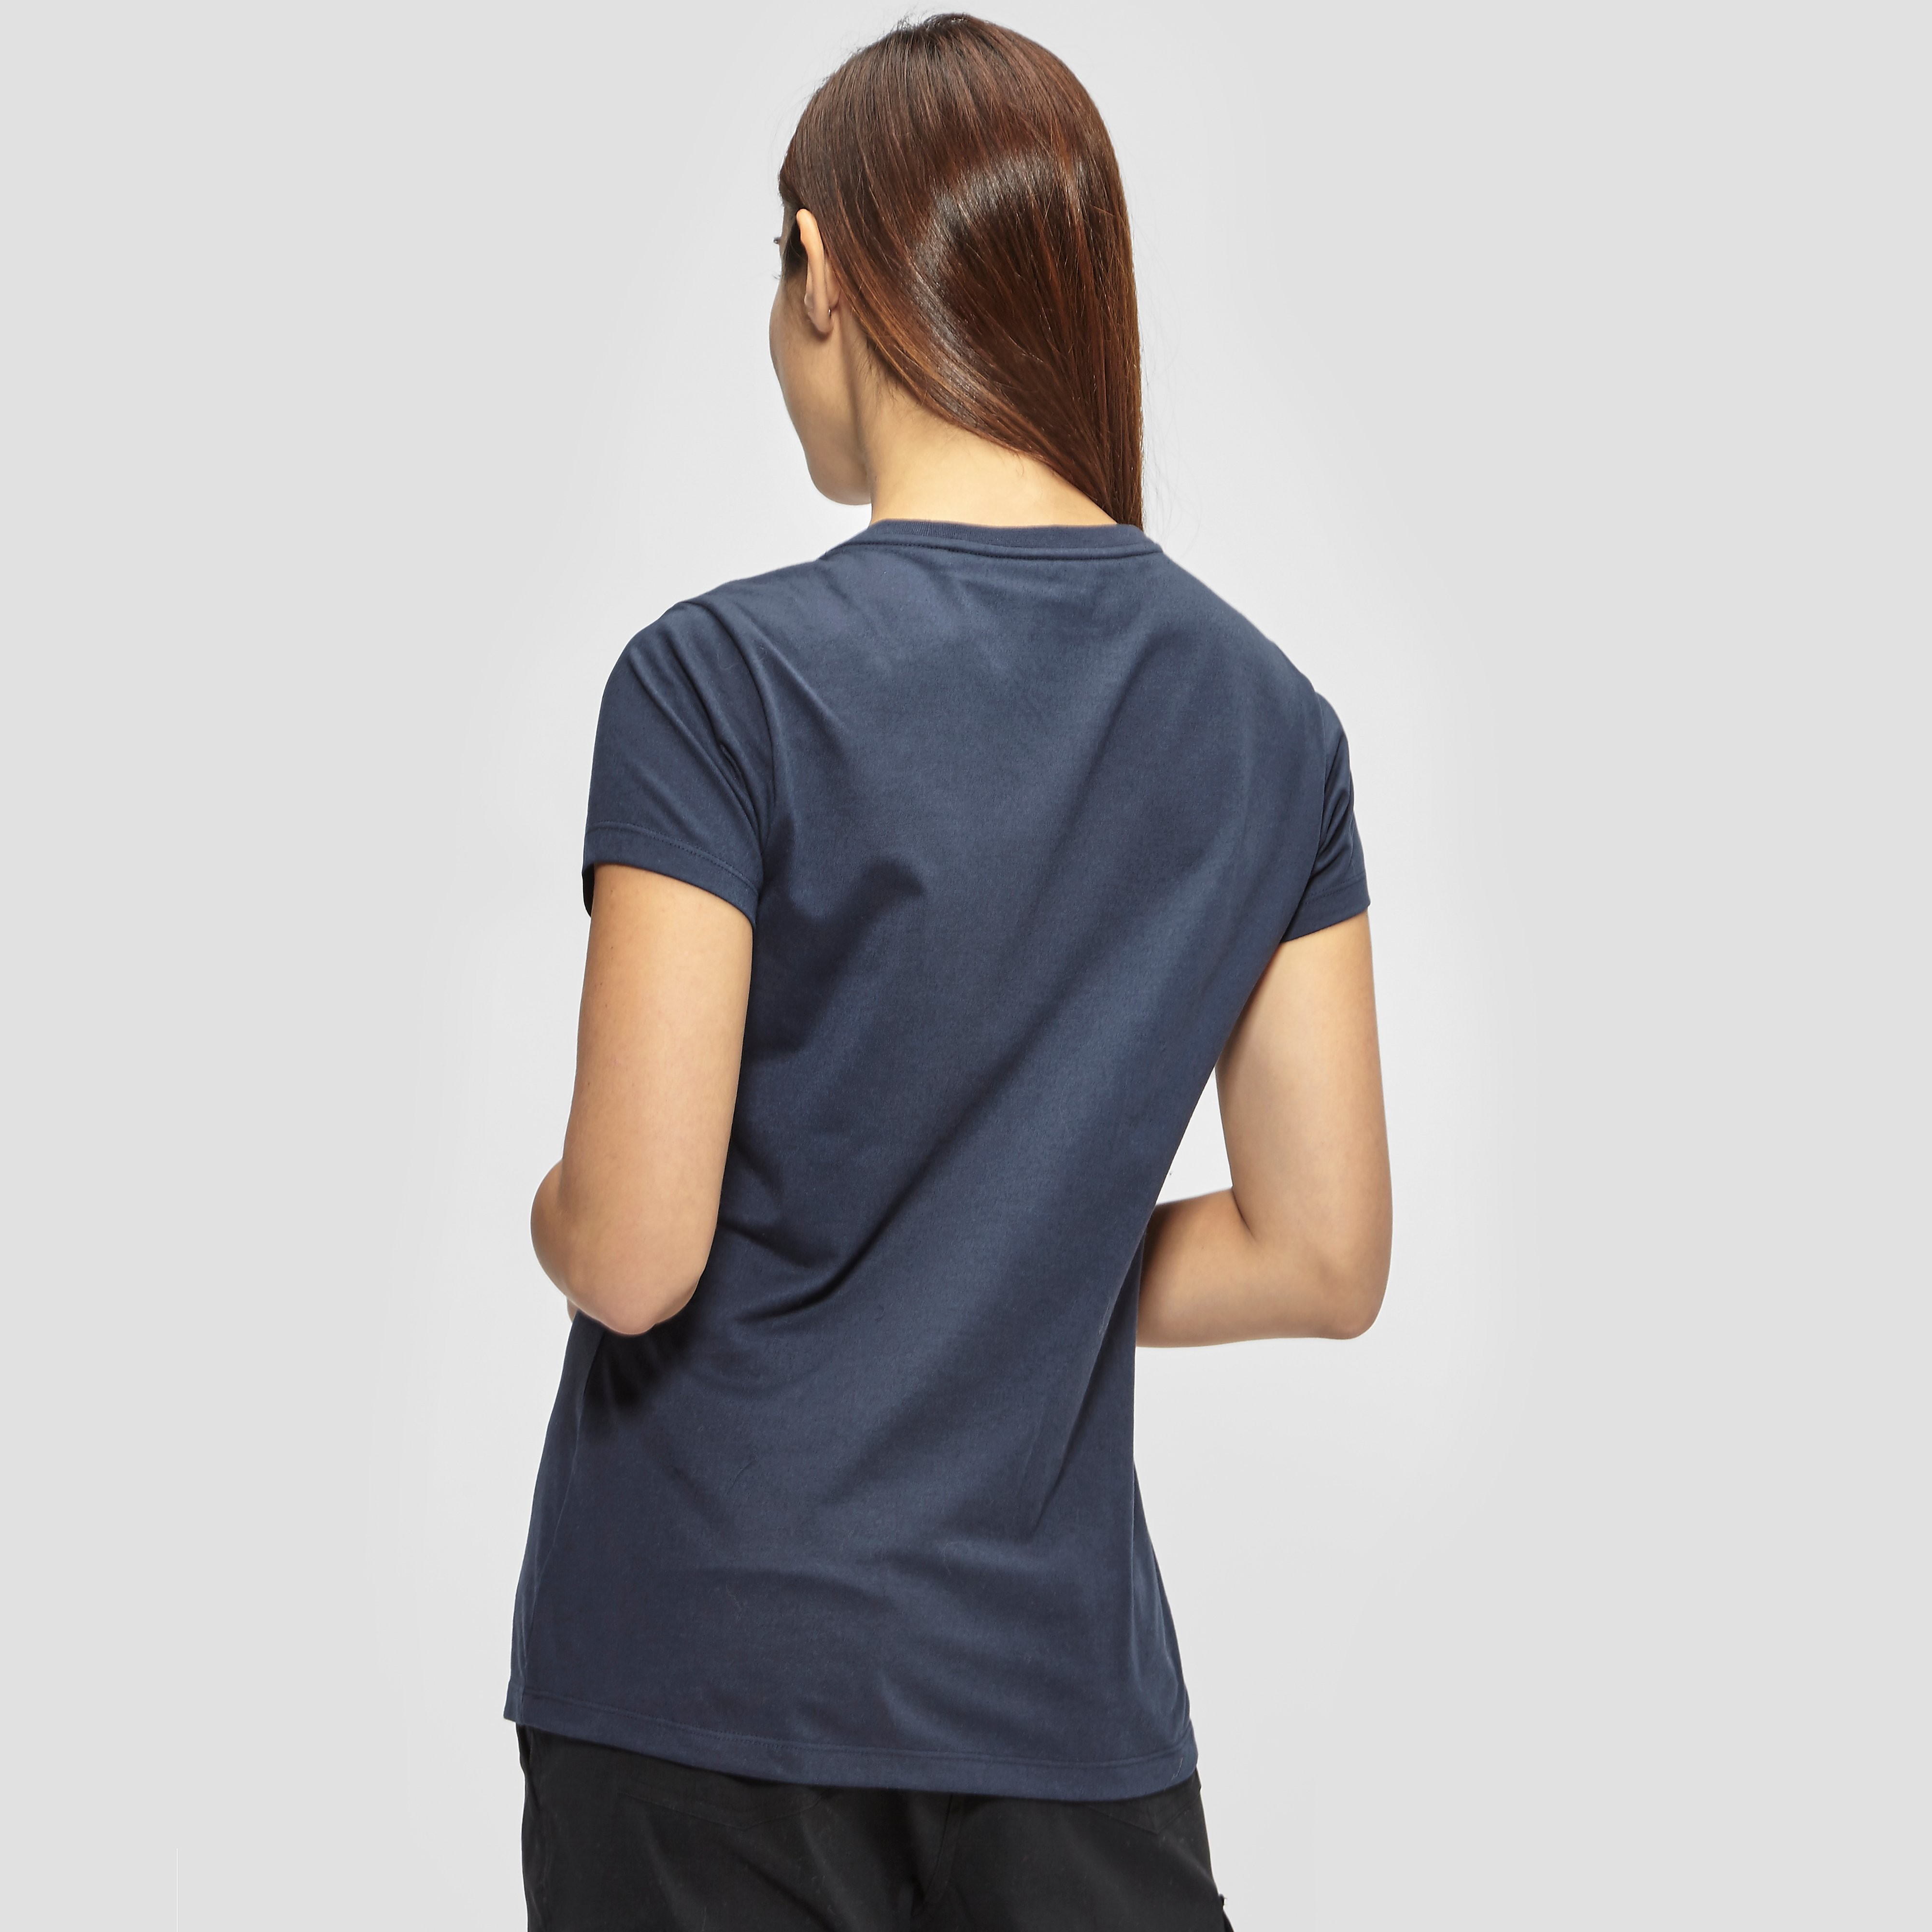 Jack Wolfskin Essential Women's T-Shirt